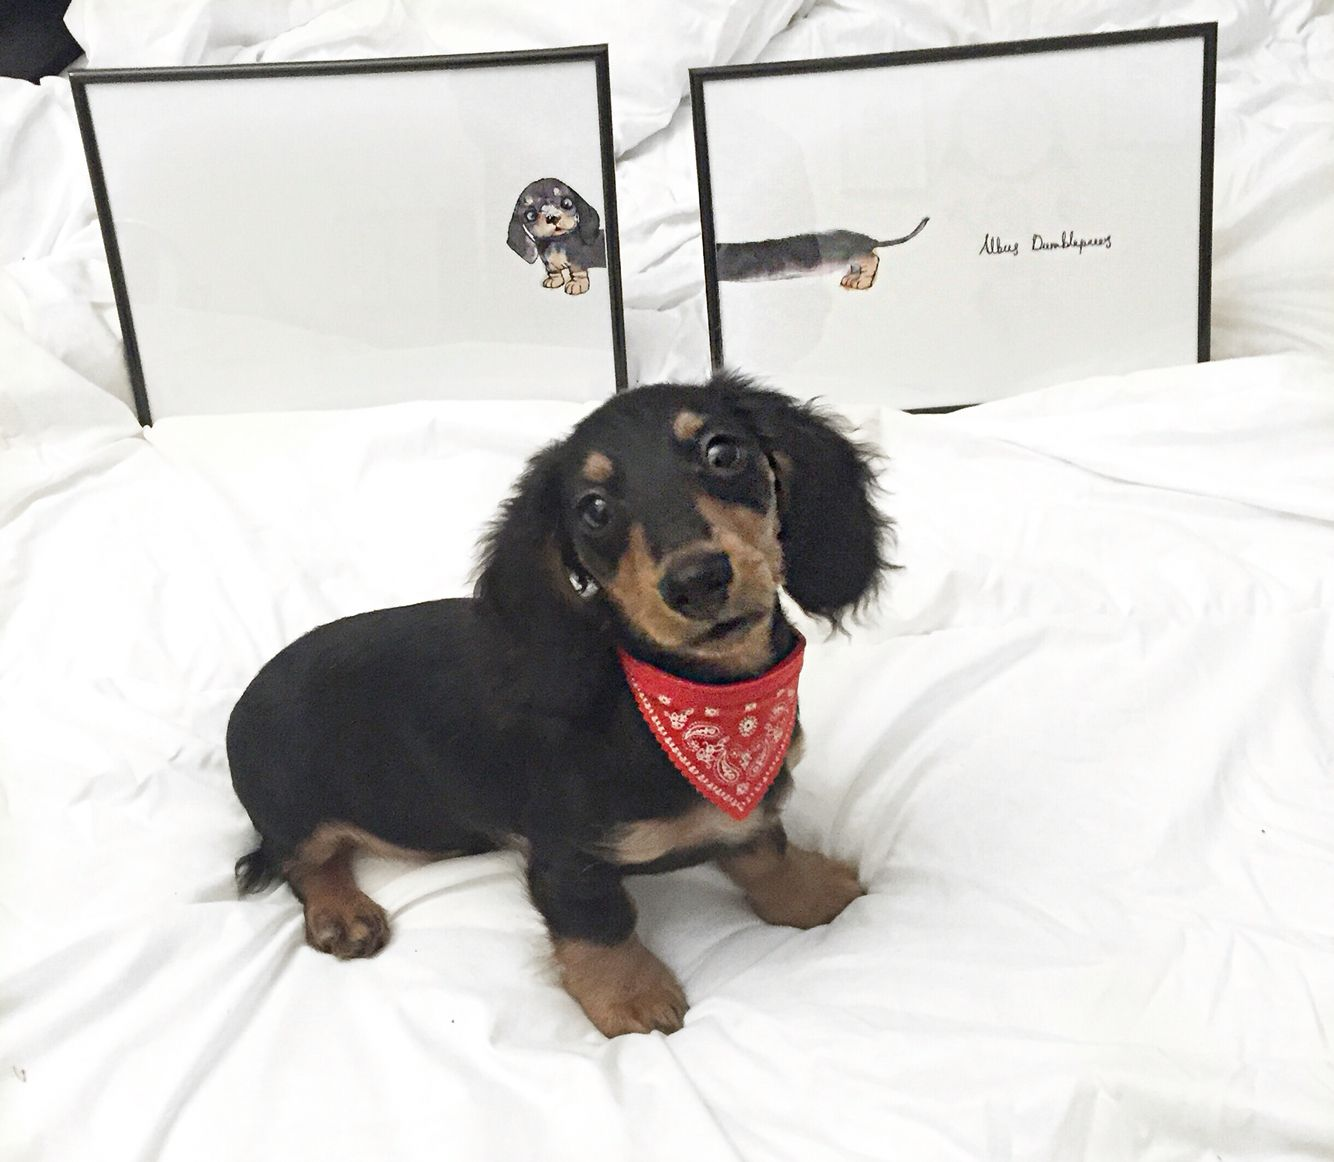 Long Haired Miniature Dachshund Puppy Albusdumblepaws Dachshund